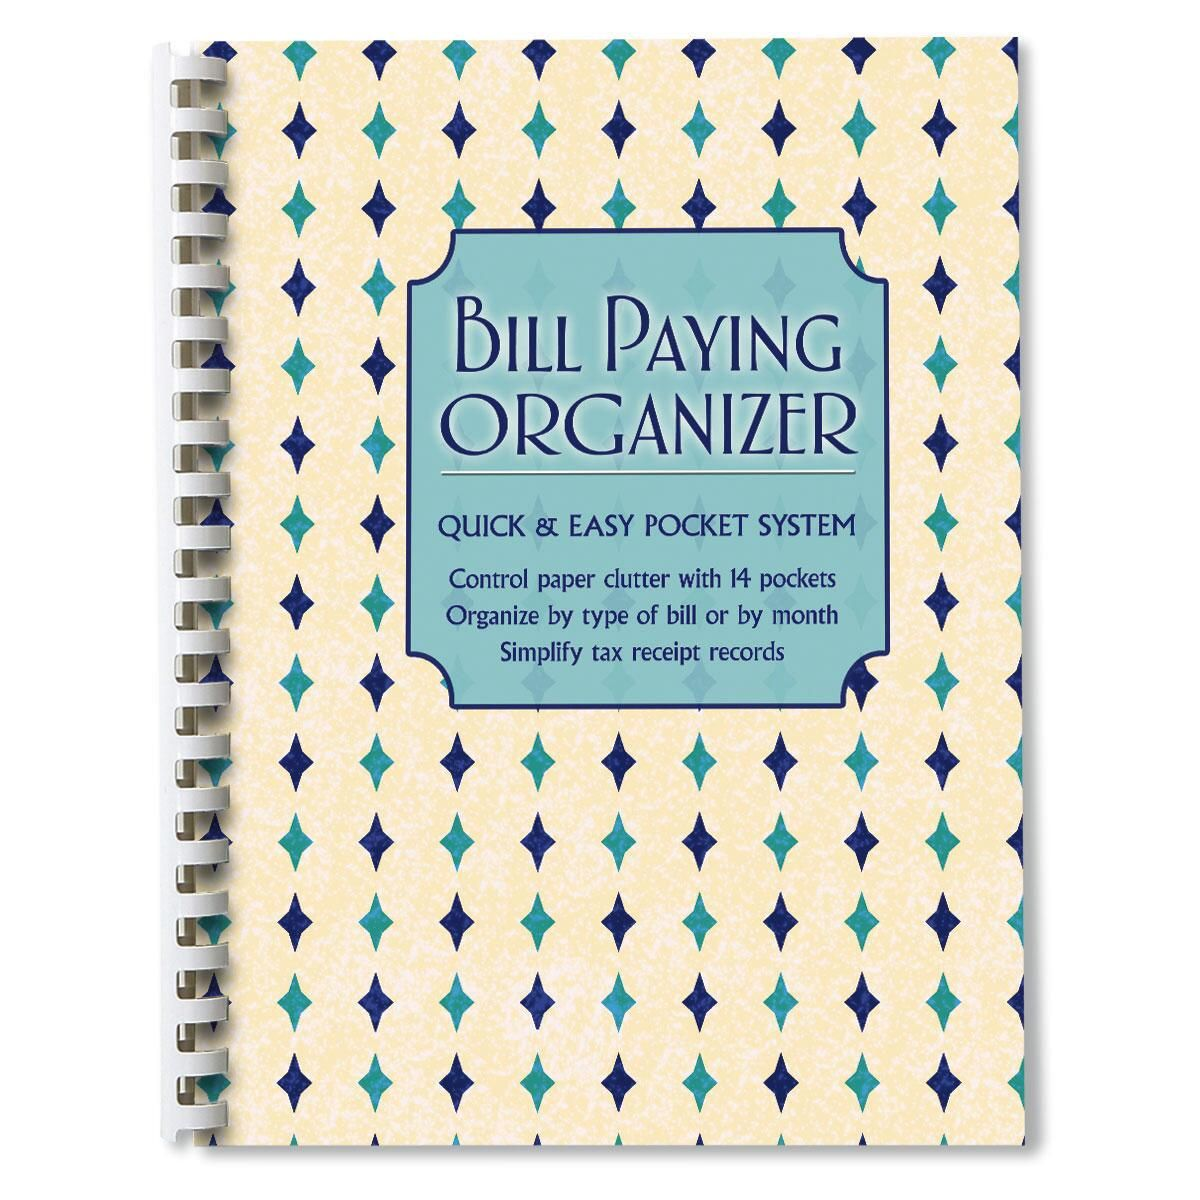 Mosaic Pattern Bill Paying Organizer